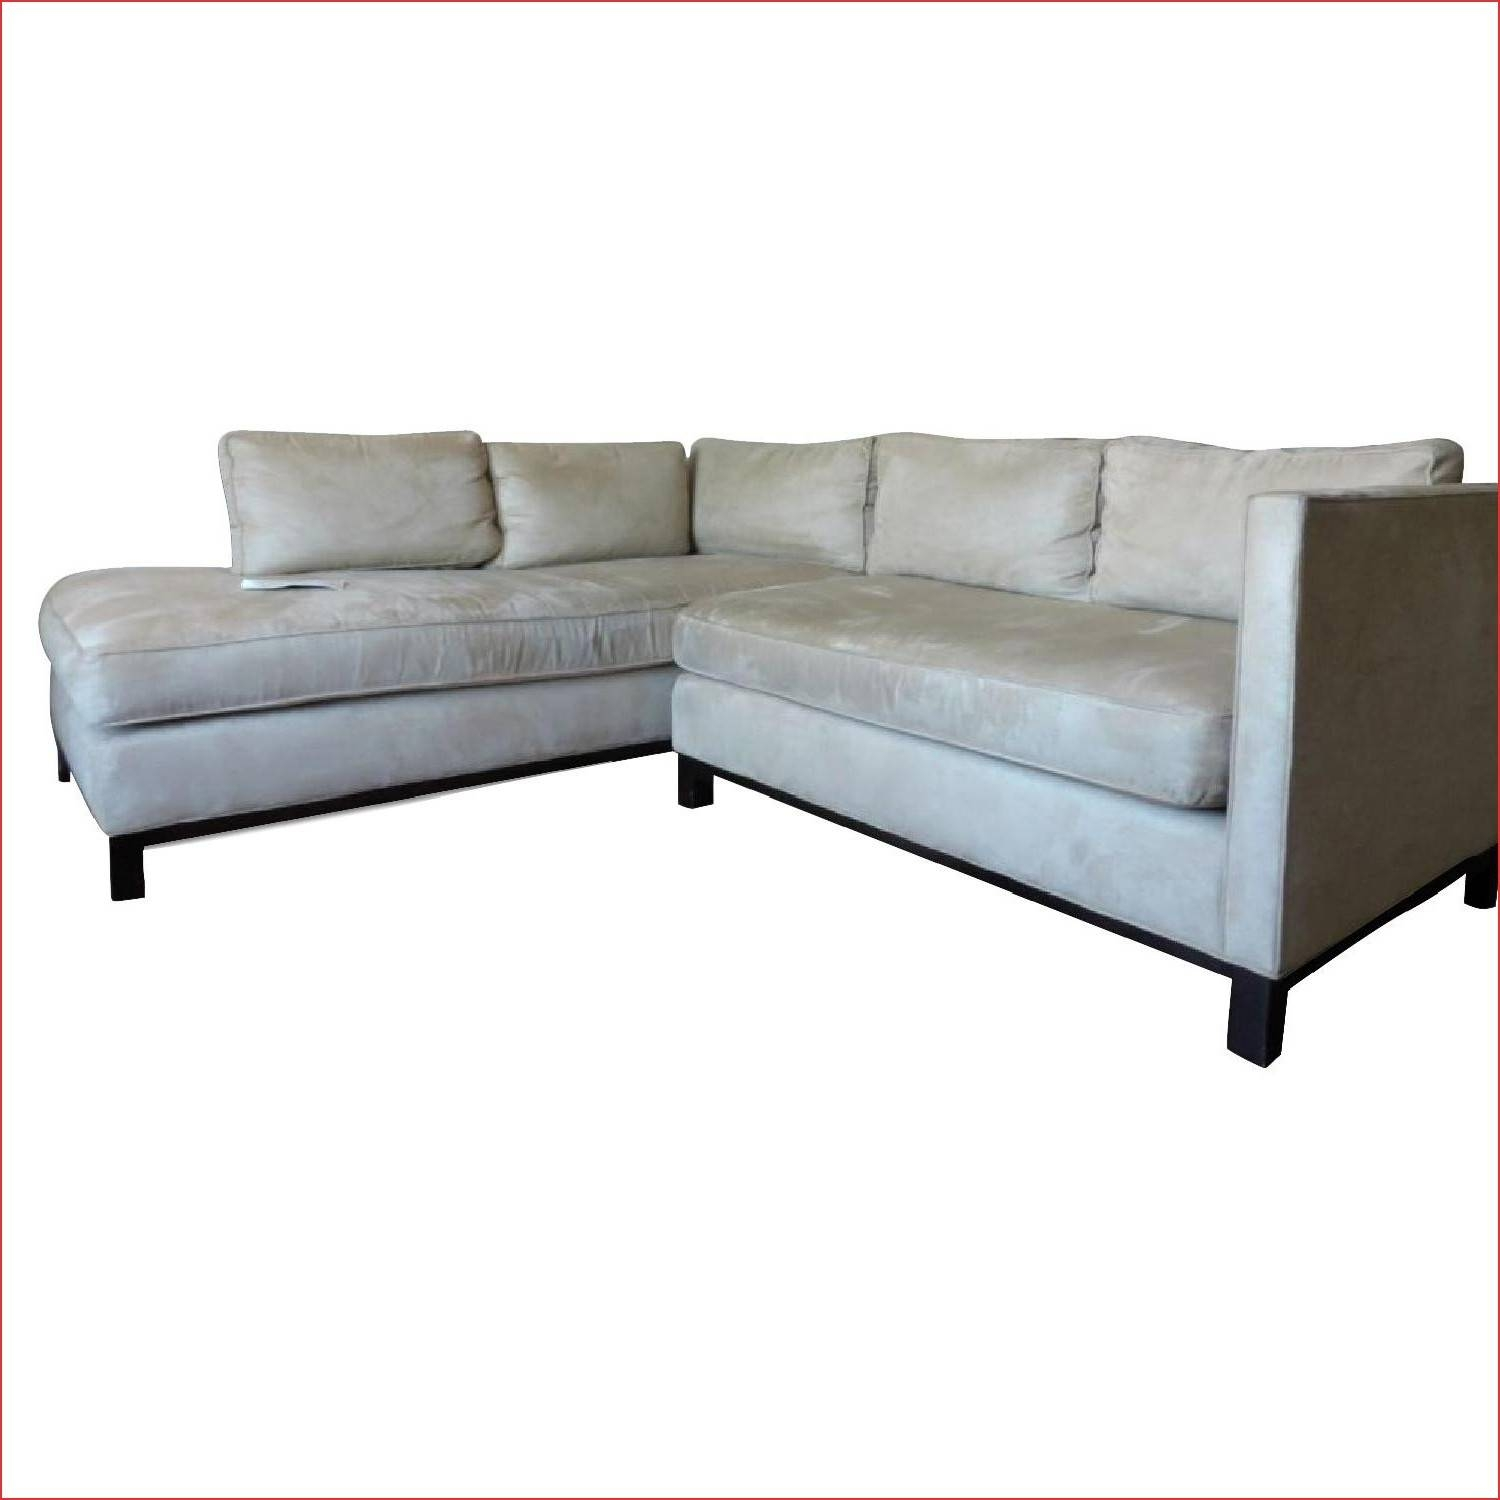 Pottery Barn Pearce Sectional Replacement Cushions Cushions For Sofa Awesome Replacement